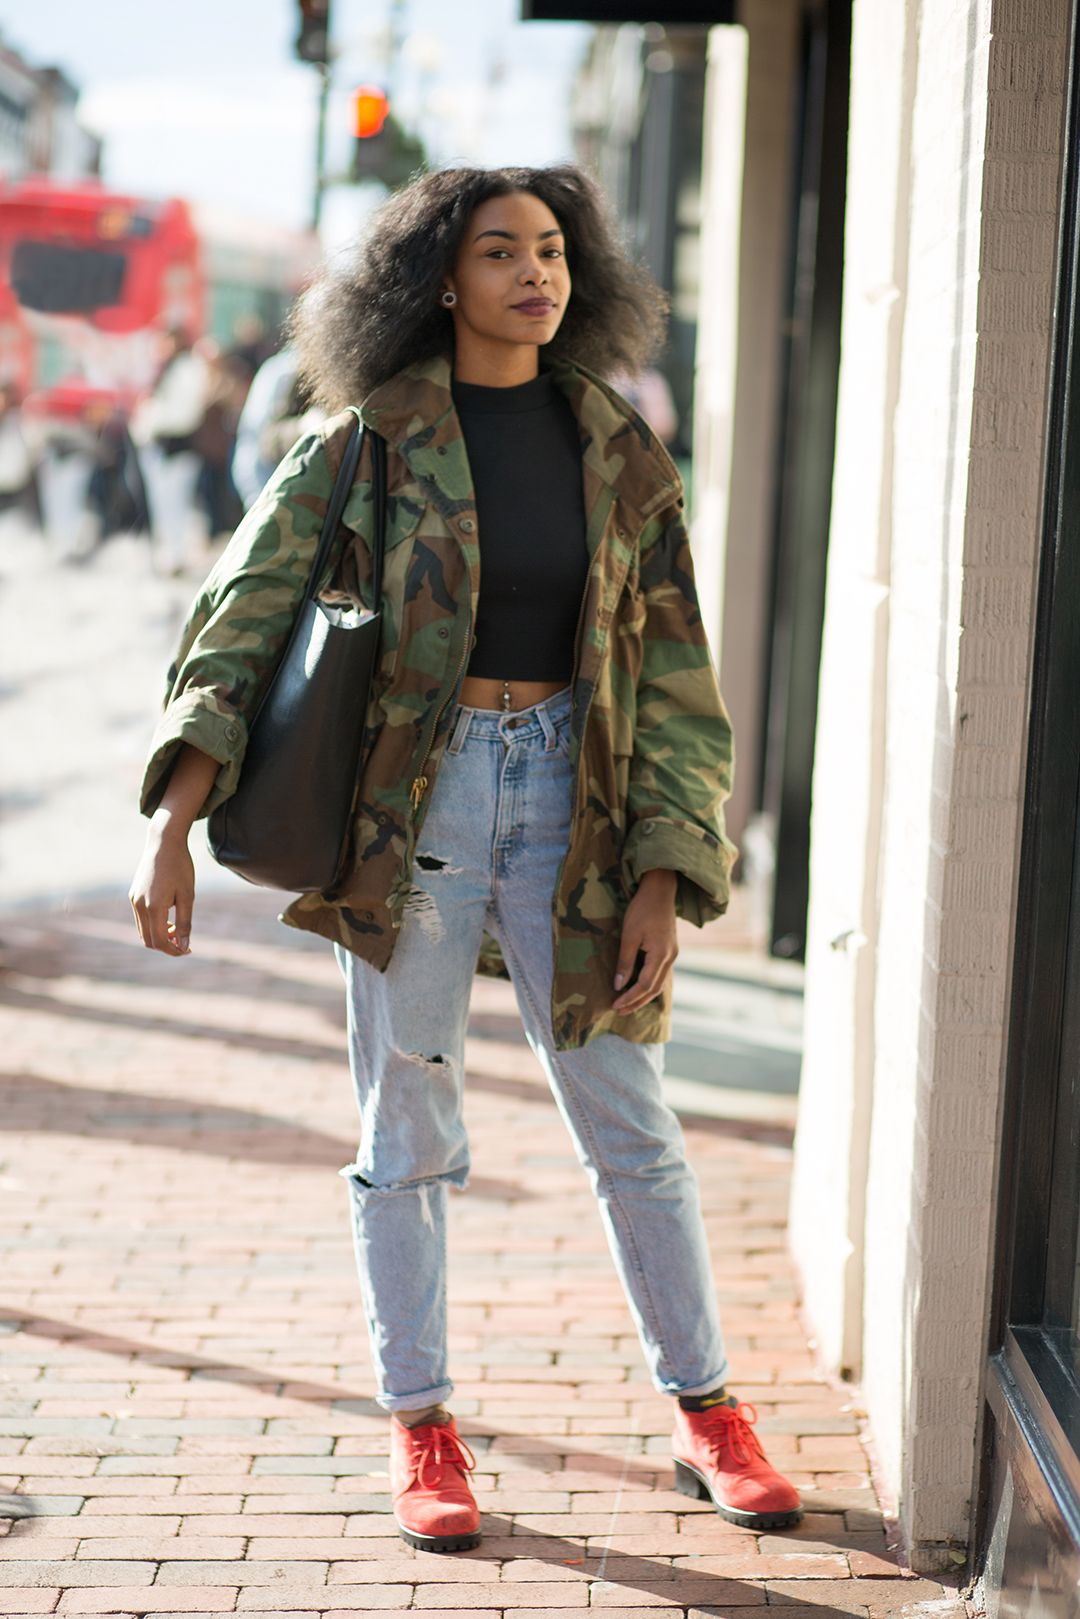 STRTJournal Washington DC StreetStyle